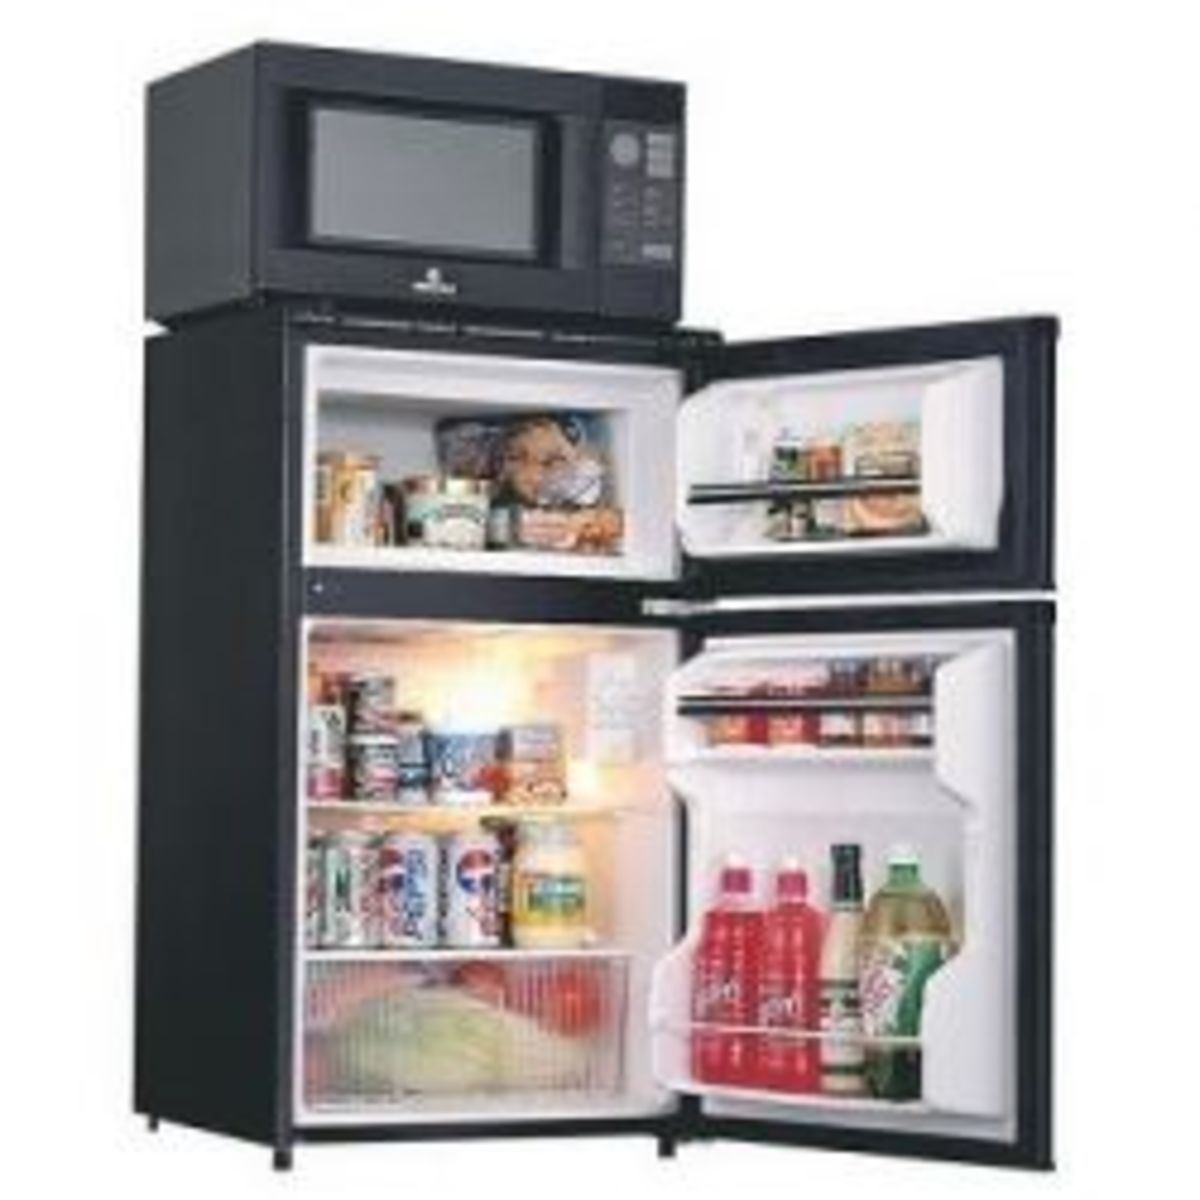 College design ideas for your small space - Refrigerator small spaces style ...